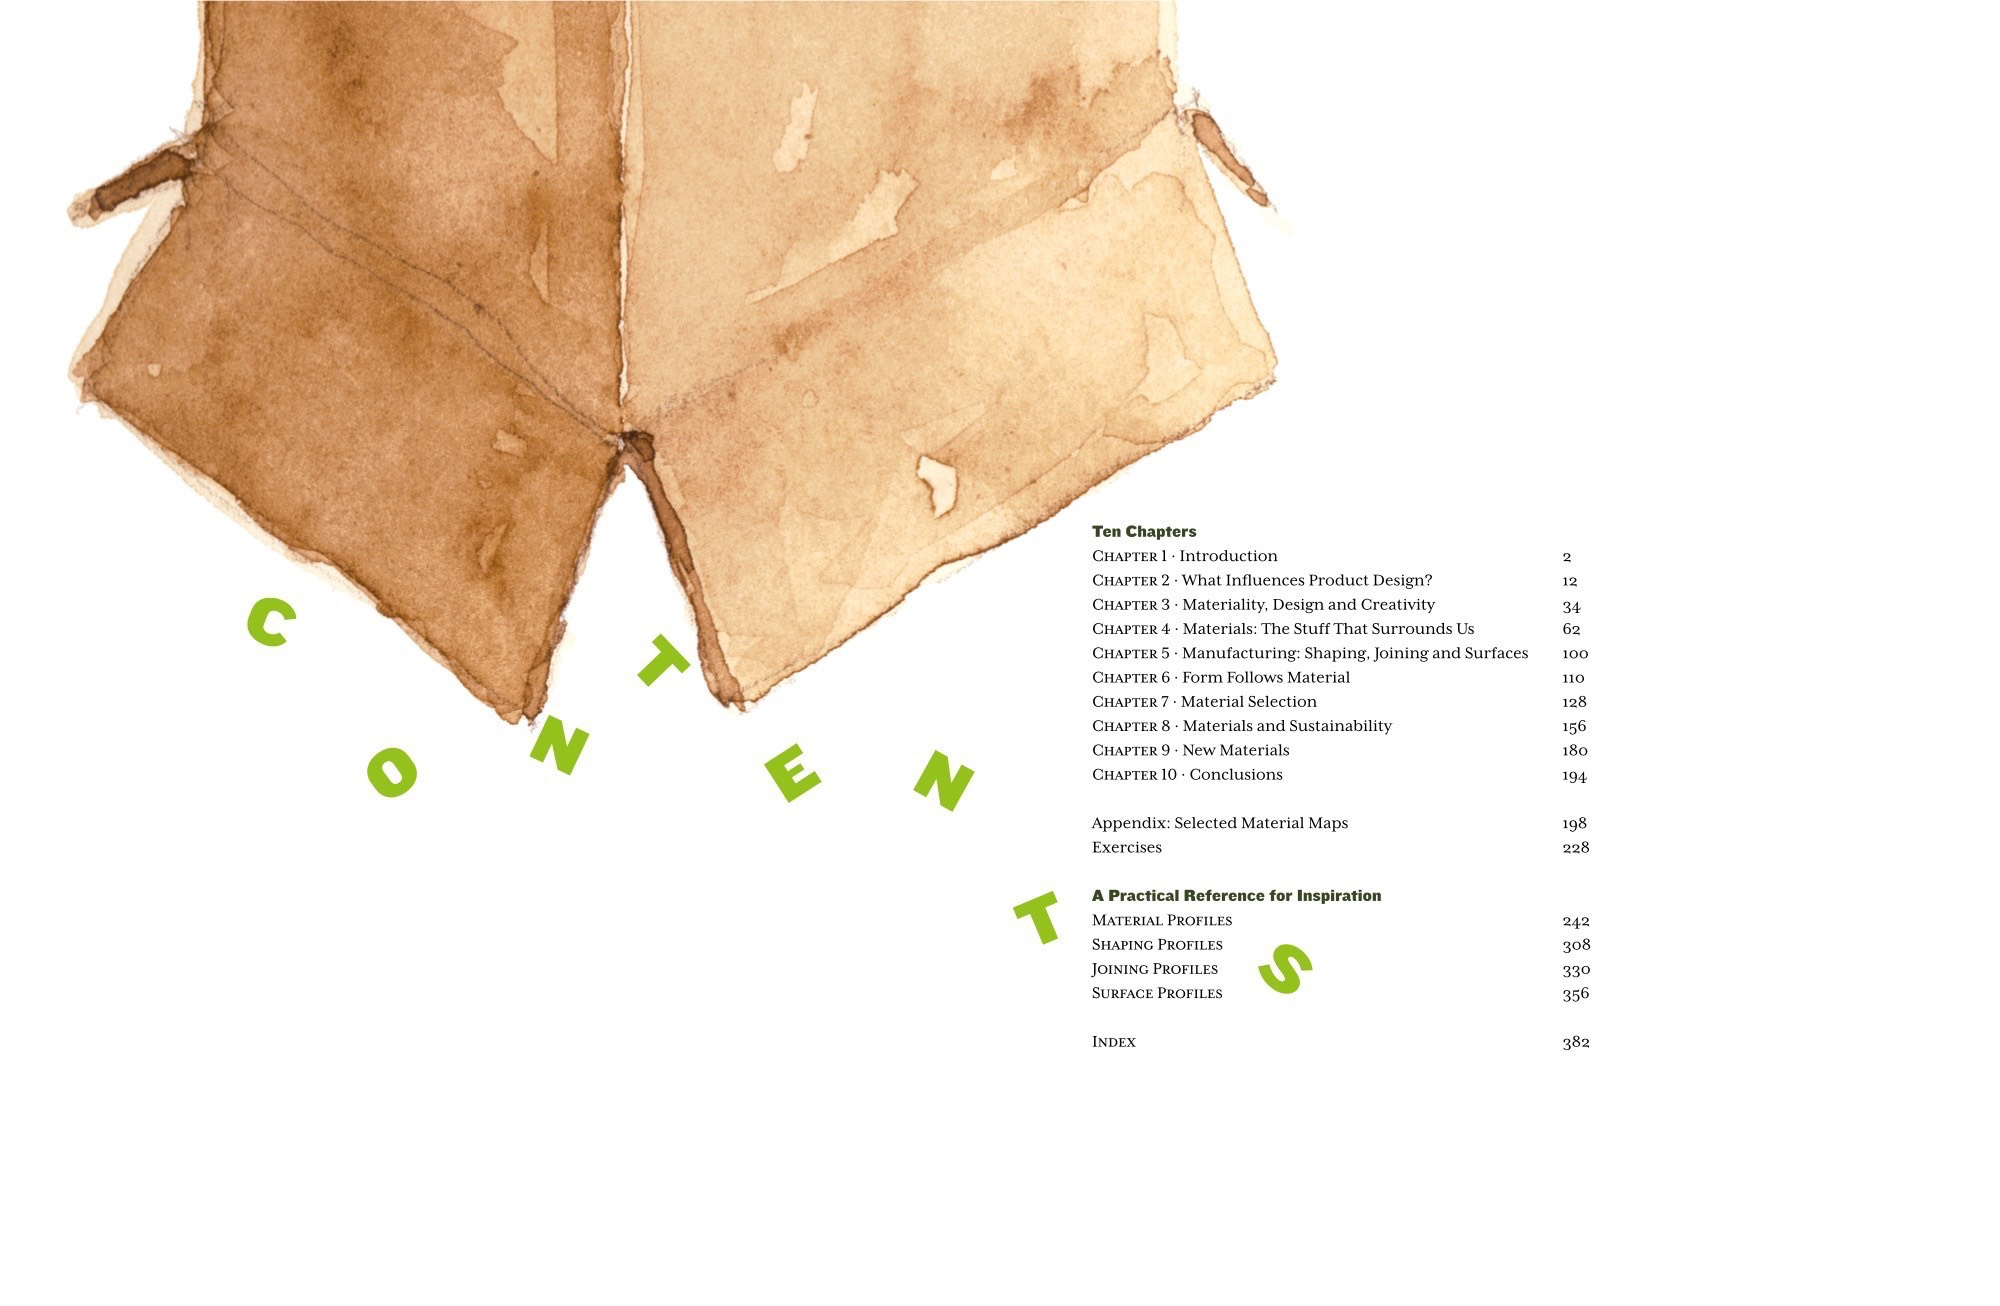 Materials and Design: The table of contents